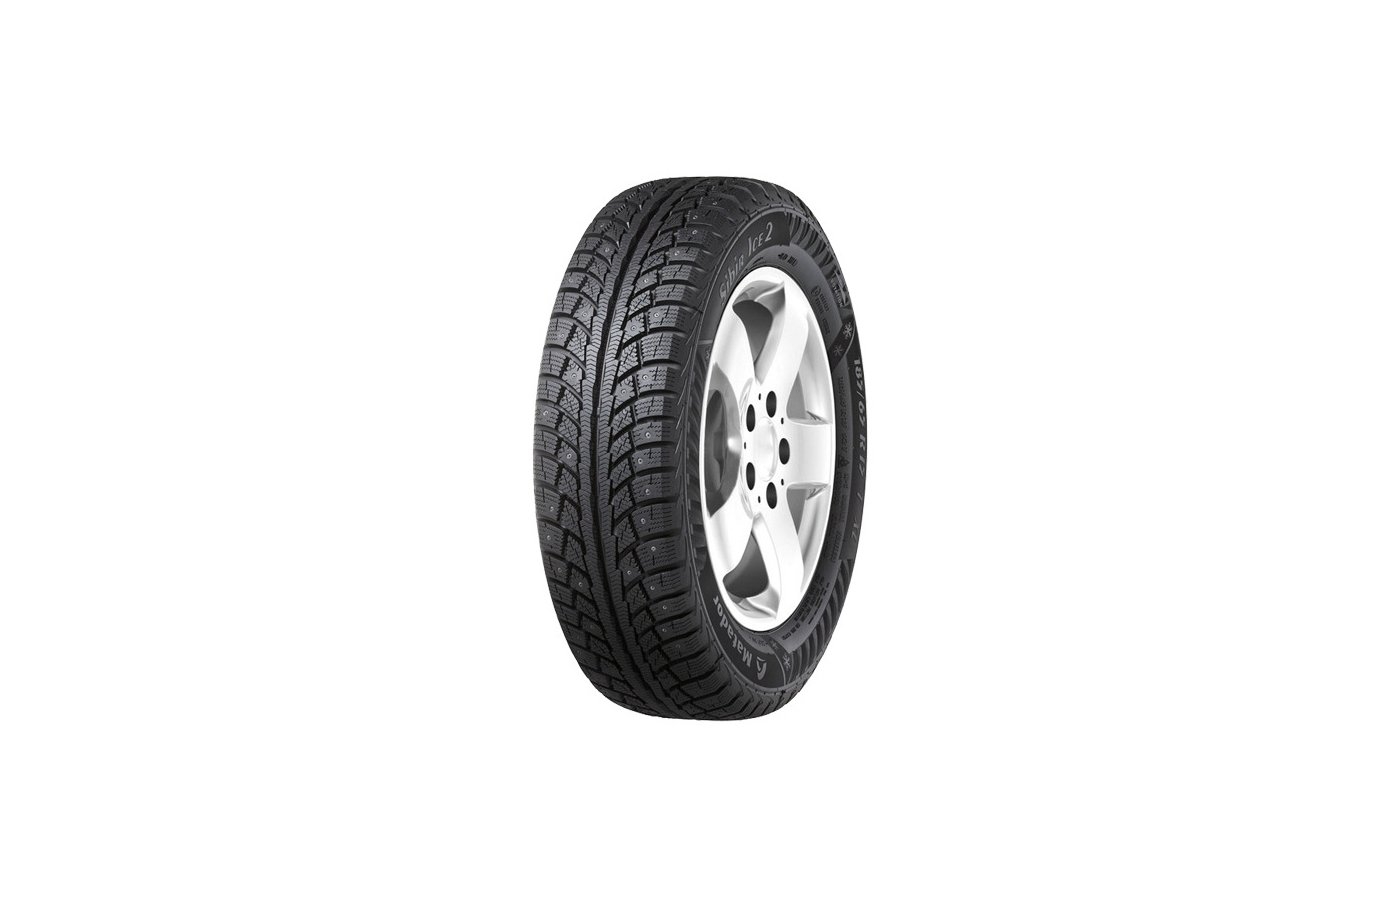 Шина Matador MP 30 Sibir Ice 2 175/65 R14 TL 86T XL шип